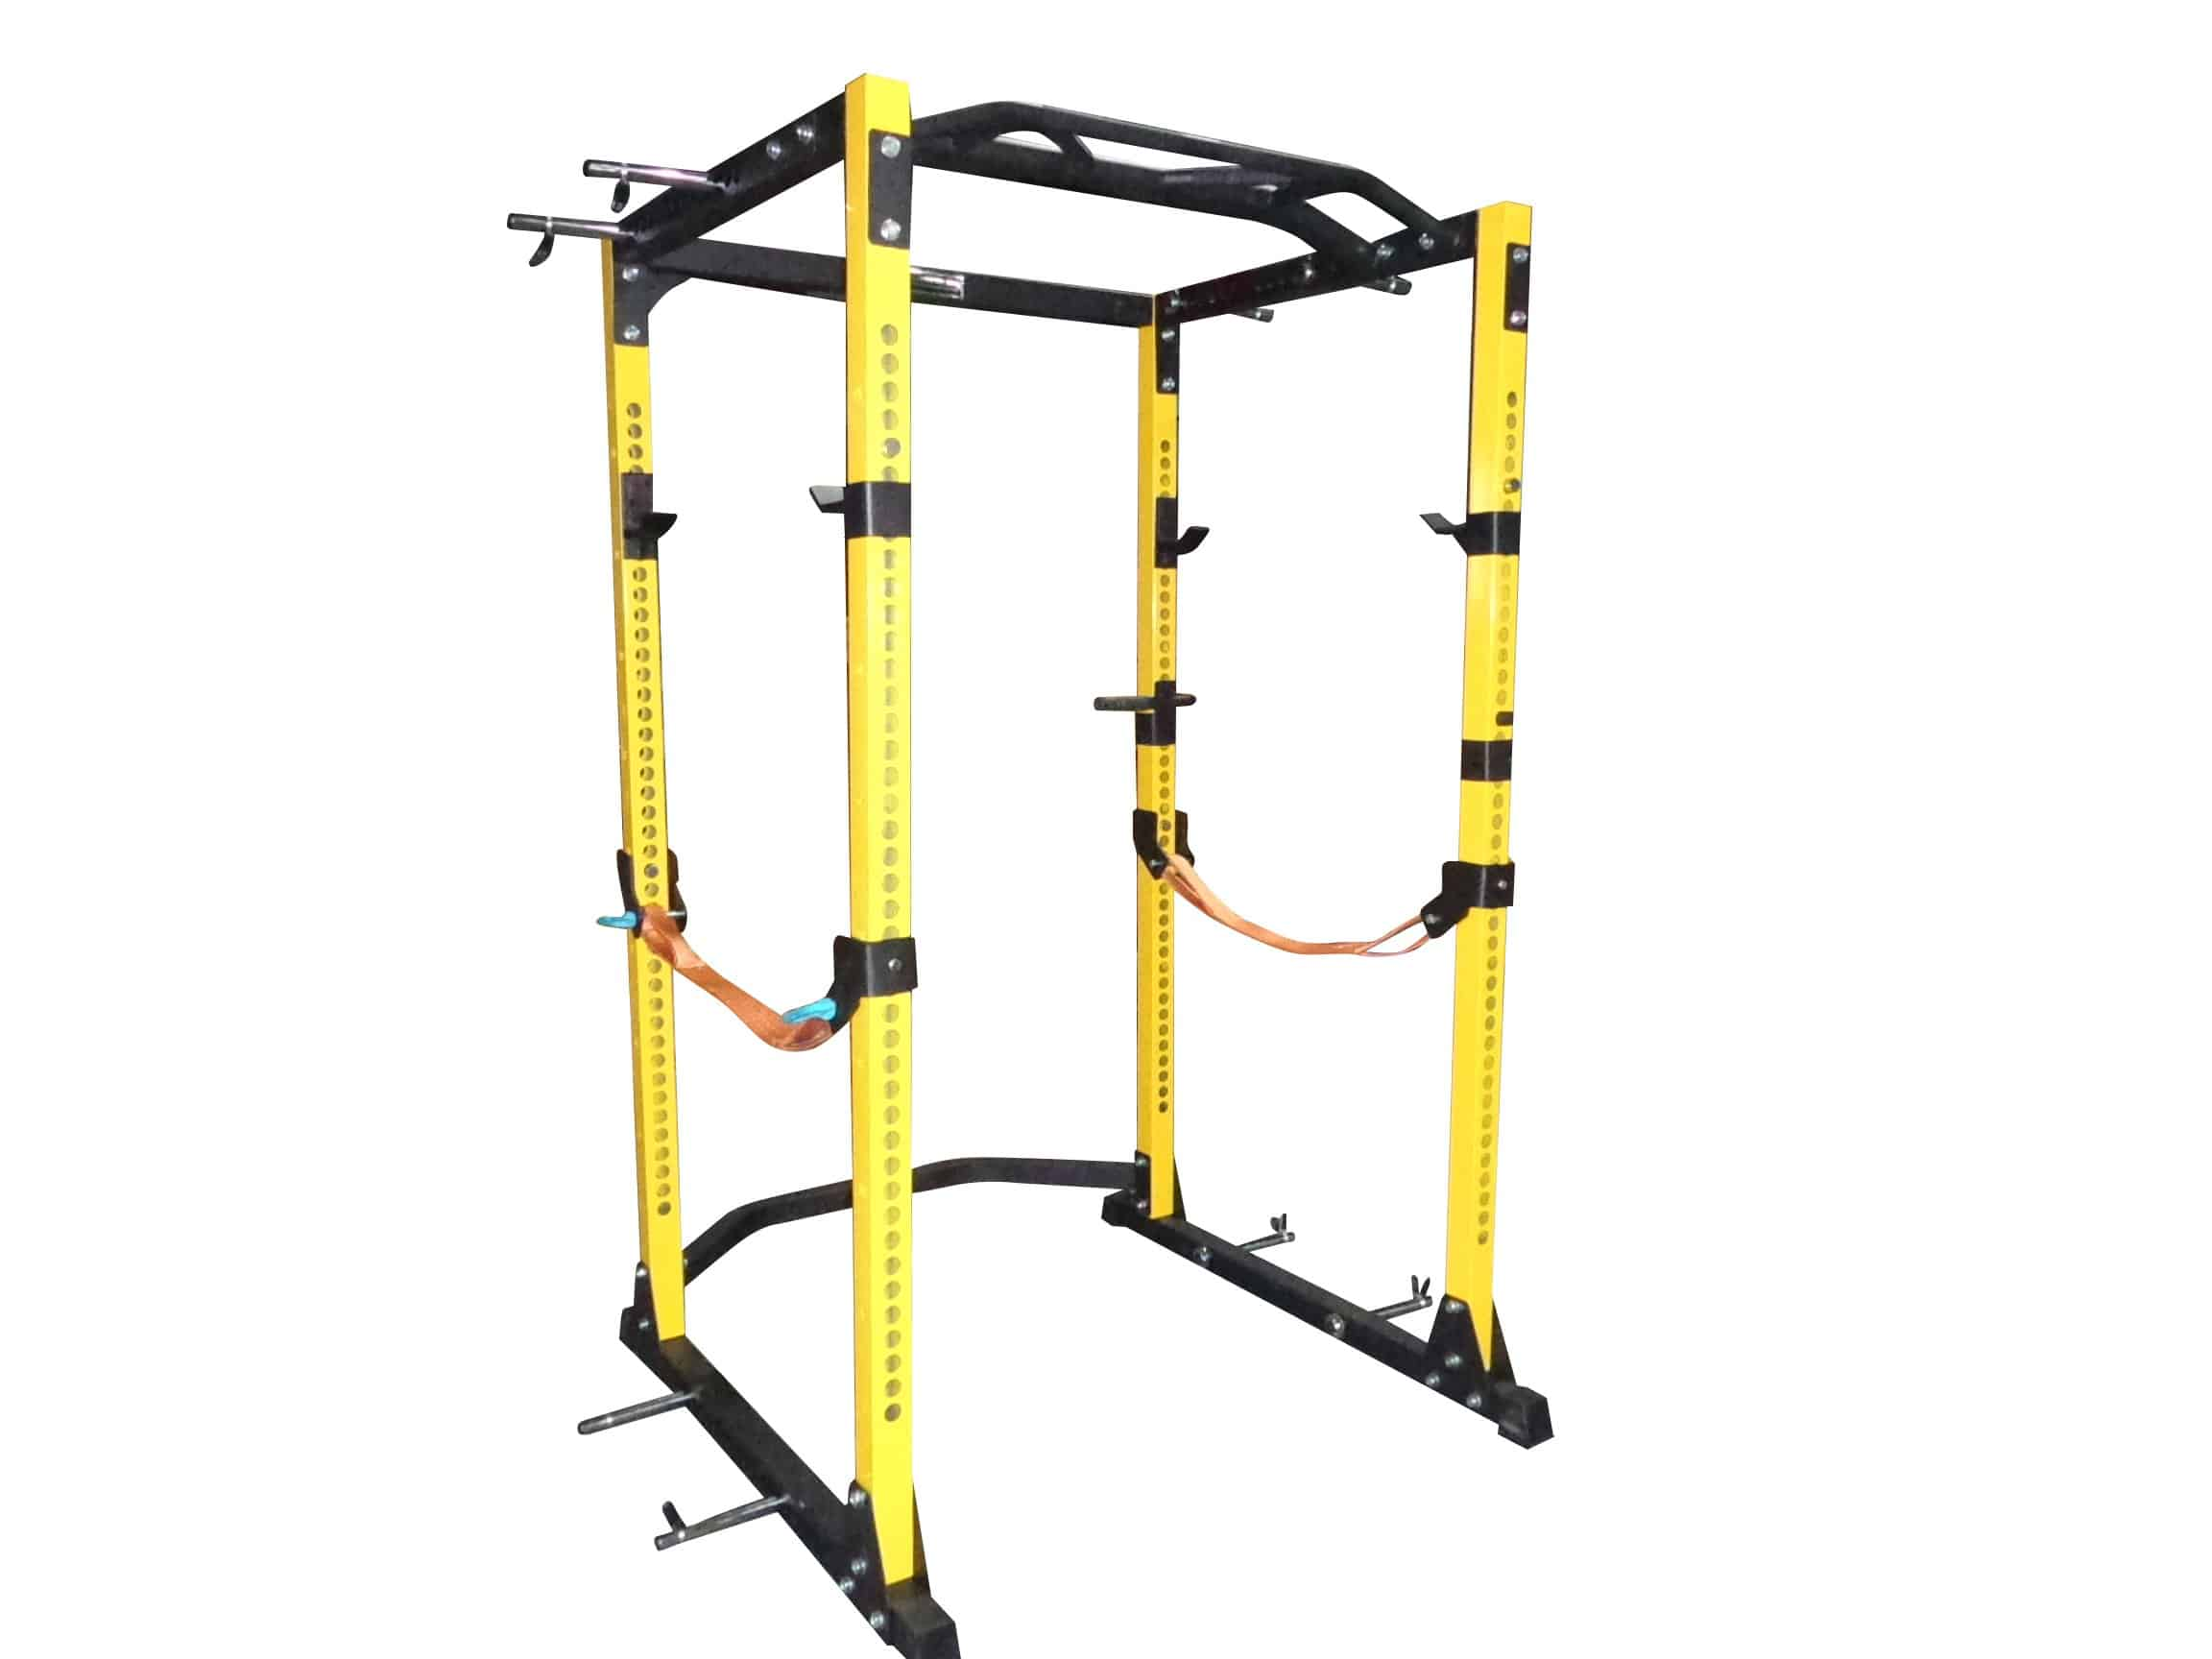 end stuff buy you of here a fitness already to from list need equipment are what build lying power rack crossfit have starting this will around scratch some your three may is if chances own everything